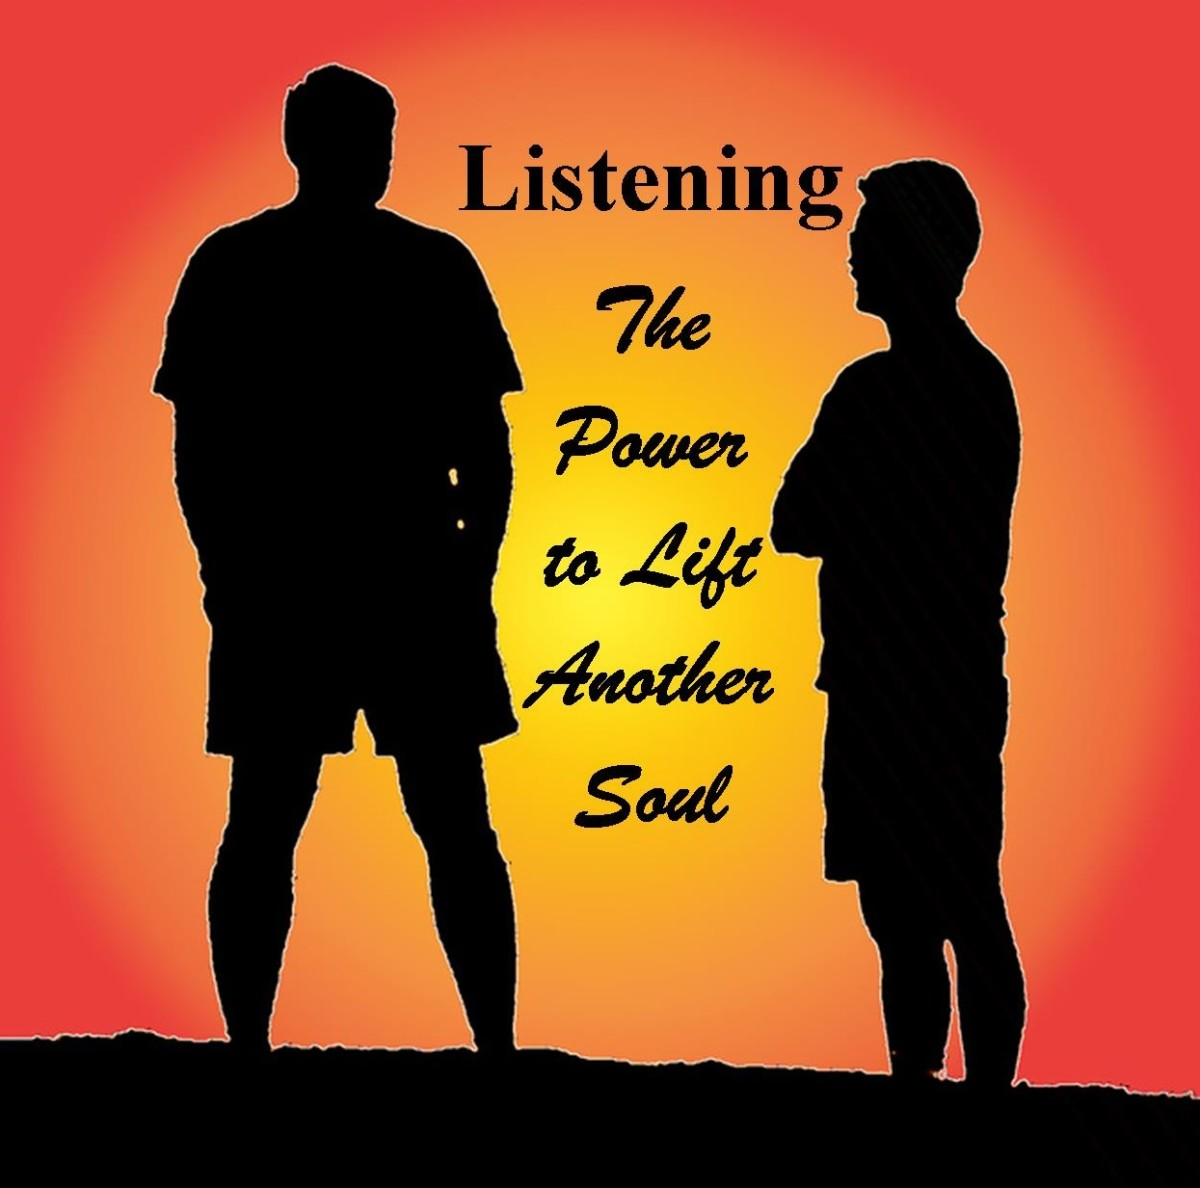 When we listen, we empower others to be better people.